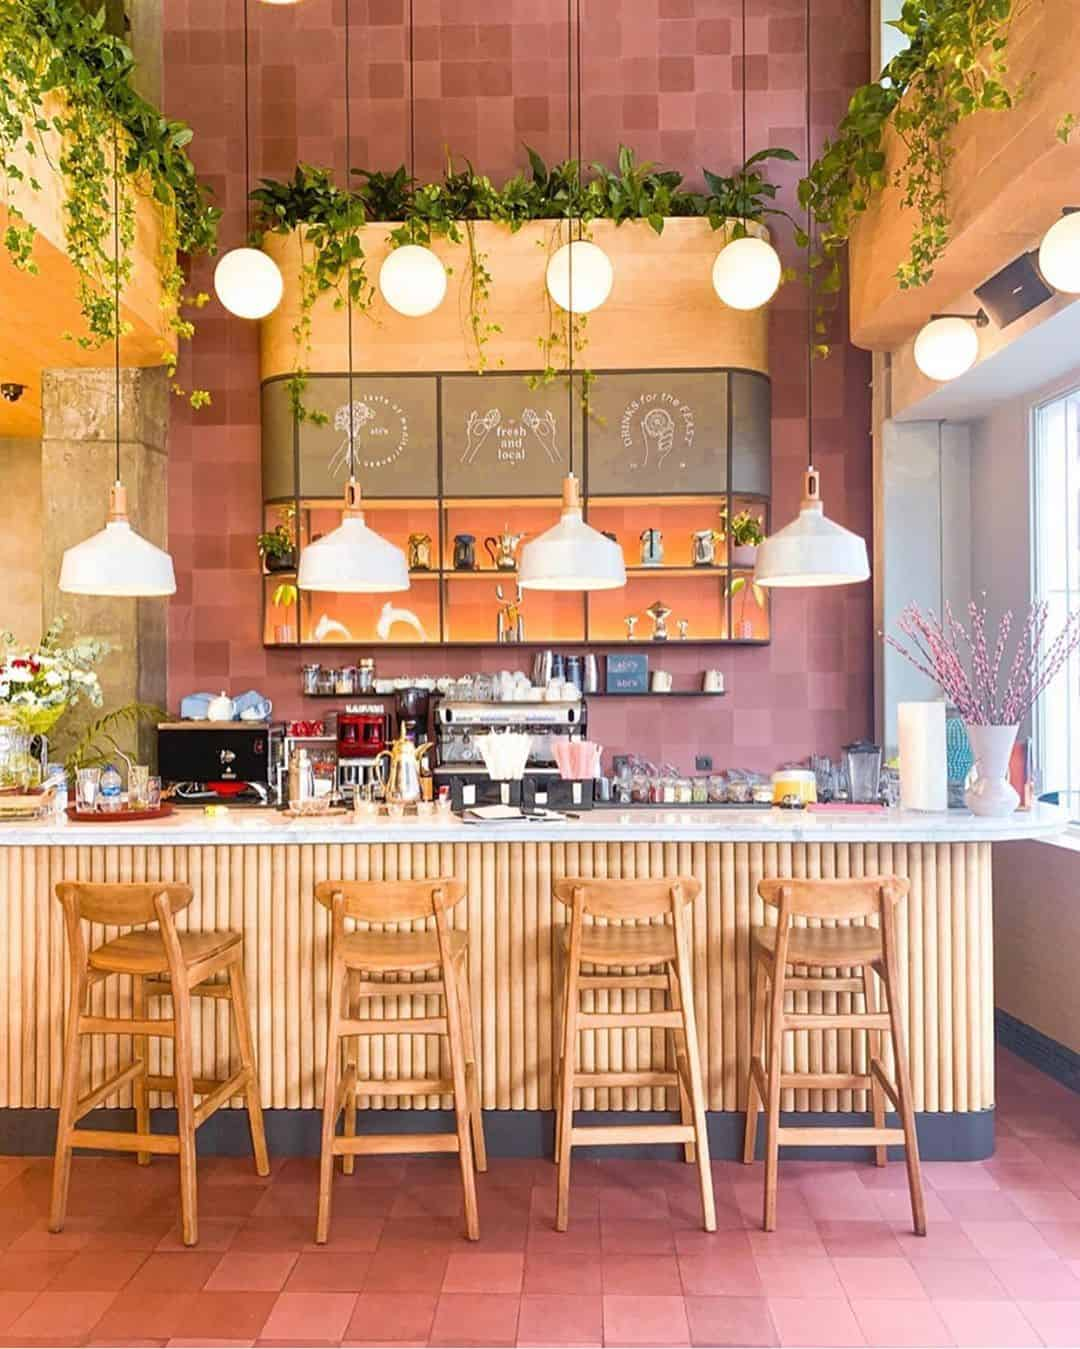 6 Pro Tips to Choose Right Lighting For Your Cafe